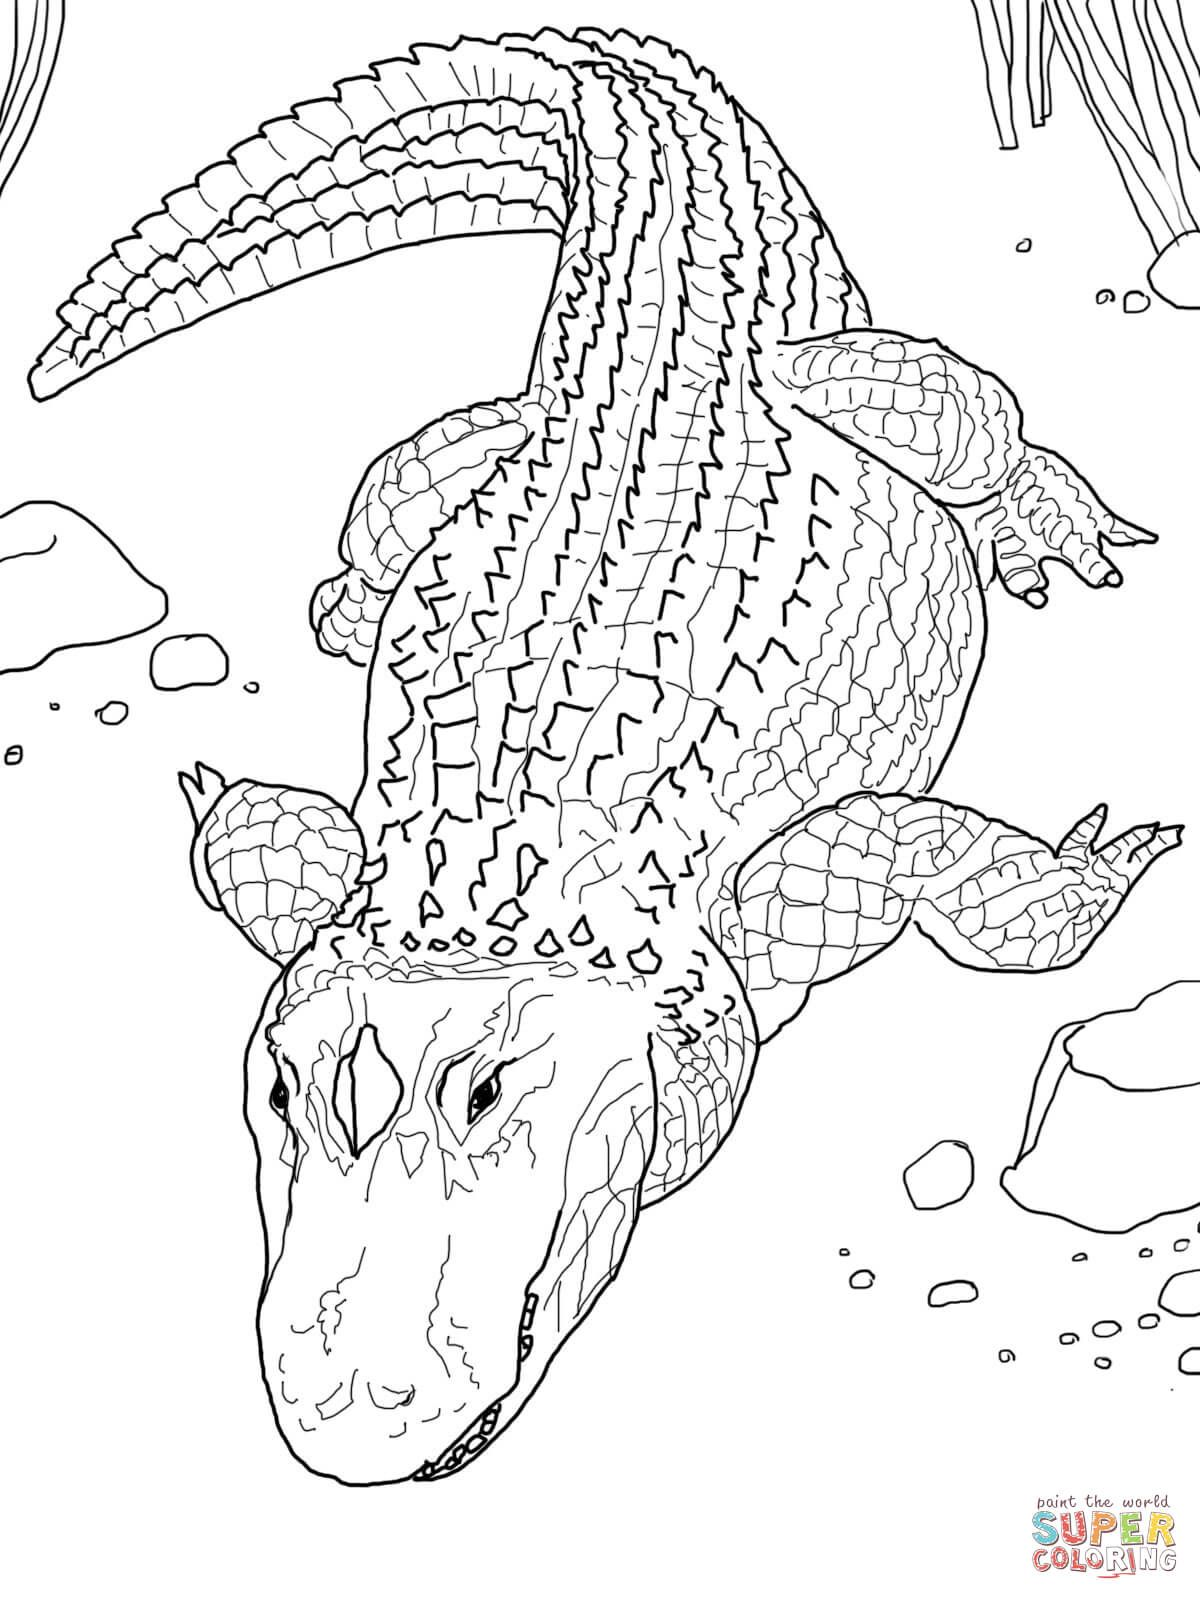 American Alligator Or Common Alligator Super Coloring Coloring Pages Animal Coloring Pages Animal Coloring Books